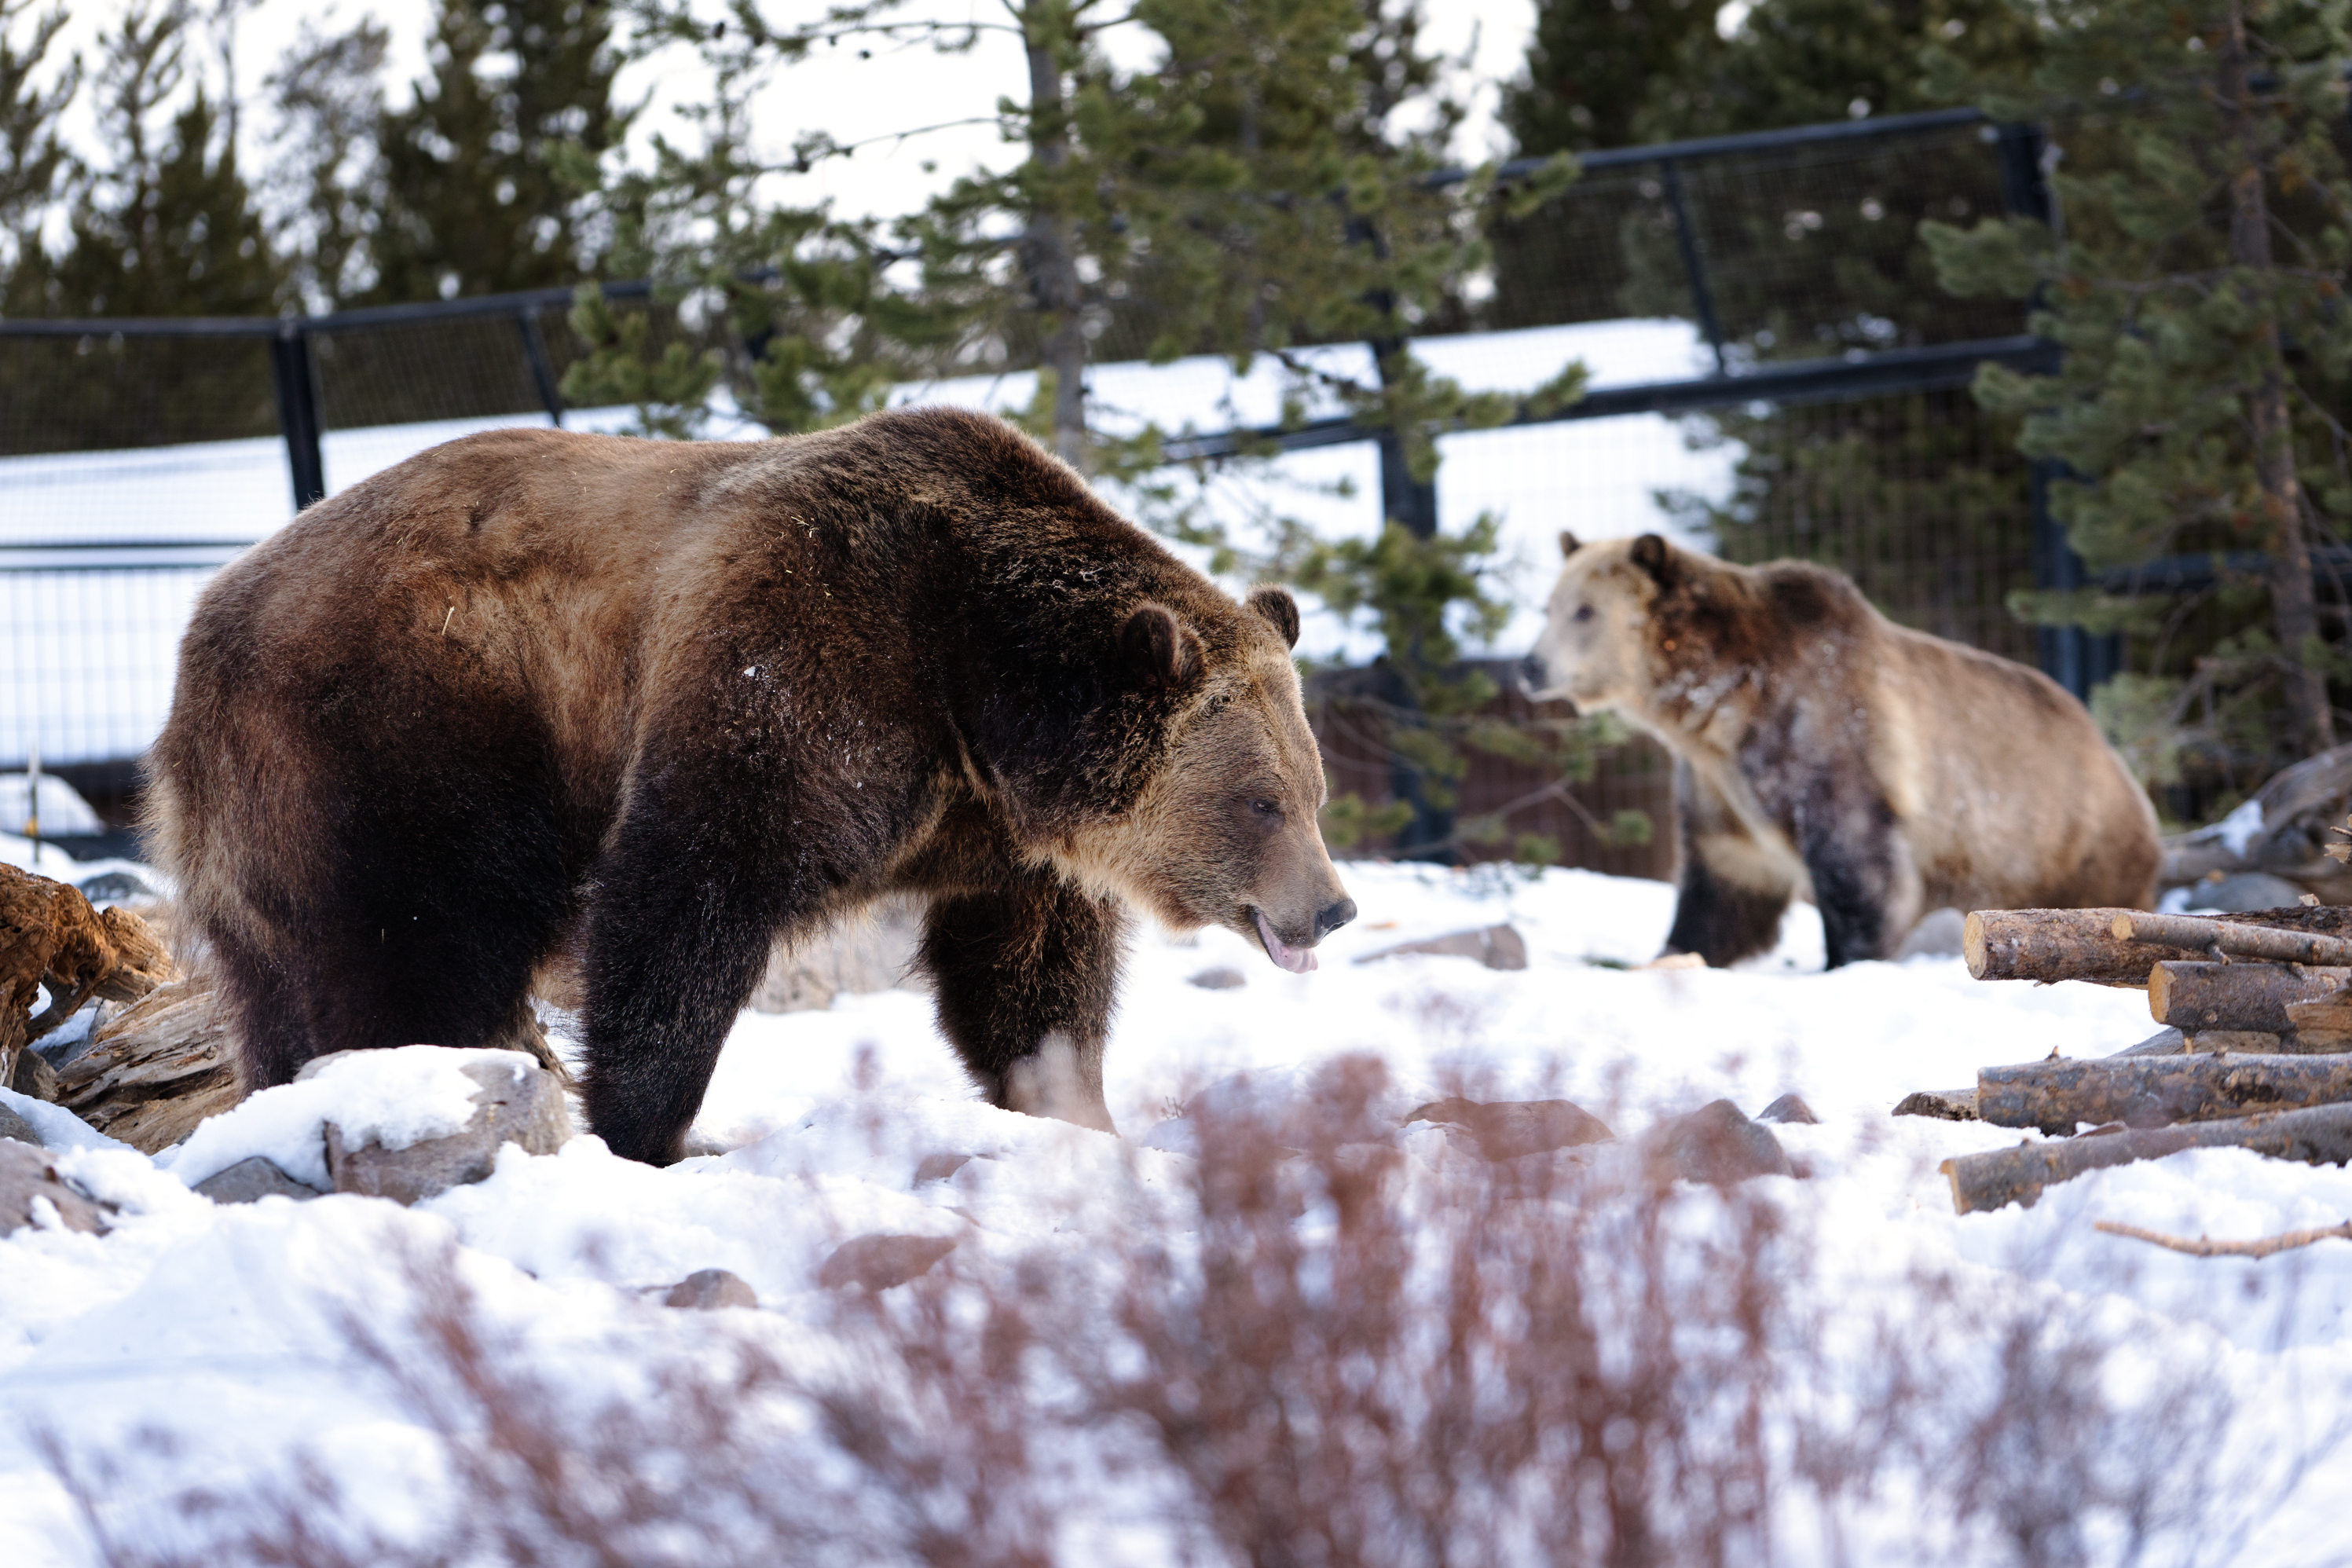 Two grizzly gears at the Grizzly and Wolf Discovery Center in West Yellowstone, Mont. Most bears are relocated to the center when they or their parents have issues with or become too comfortable interacting with humans.